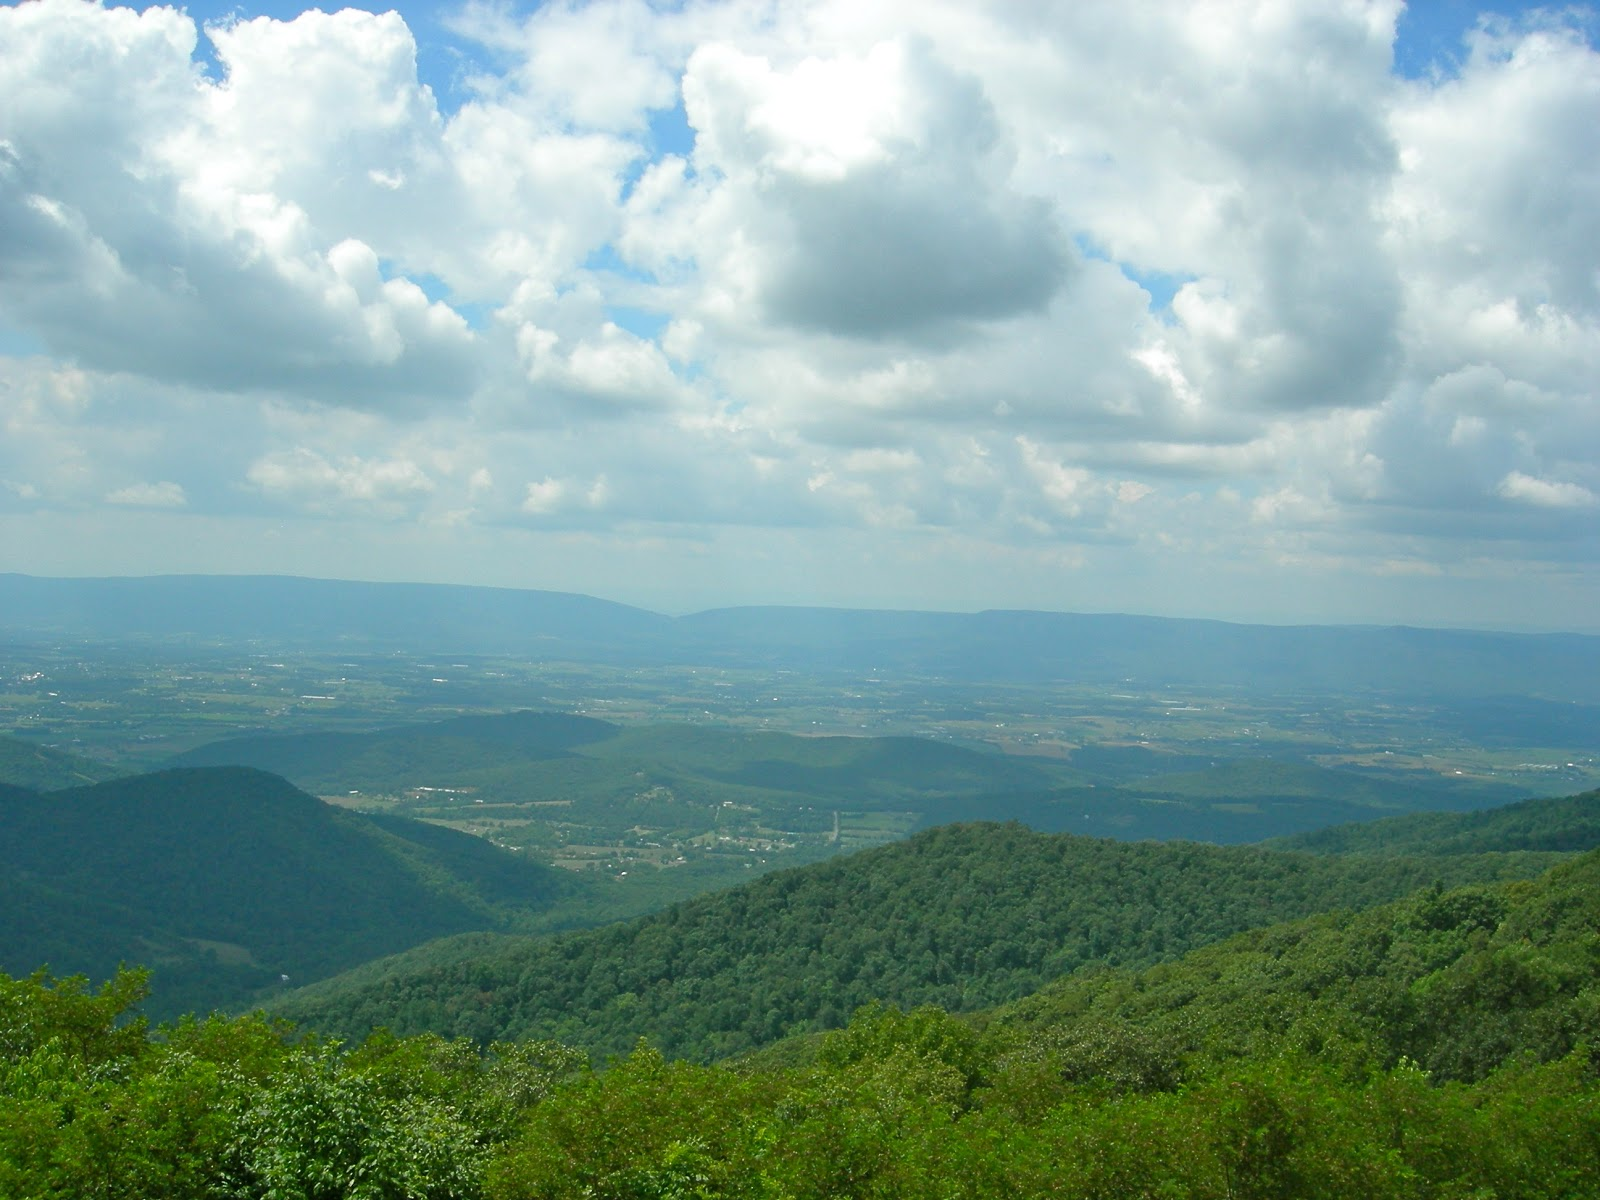 One of the Many Views from Skyline Drive